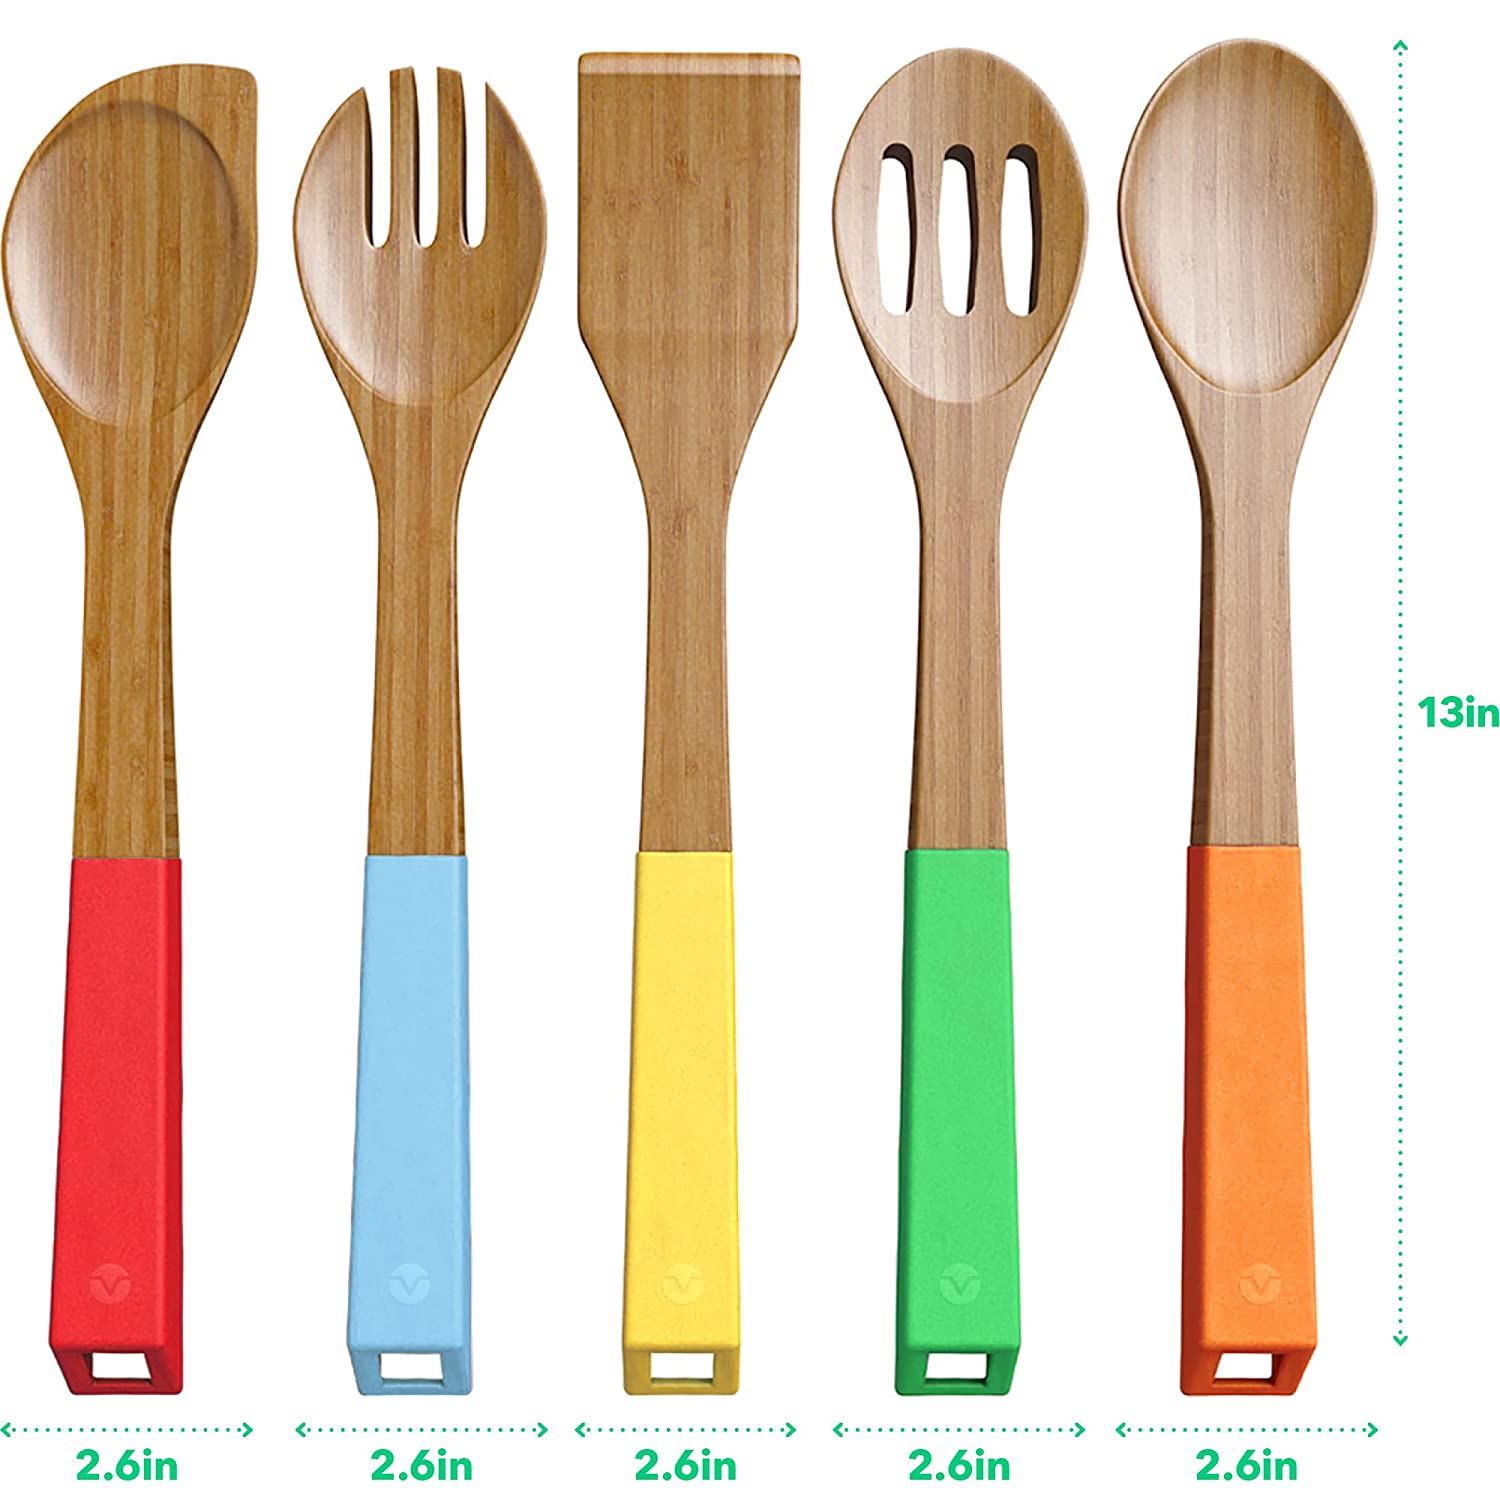 colorful kitchen utensils. Vremi 5 Piece Bamboo Spoons Cooking Colorful Kitchen Utensils T